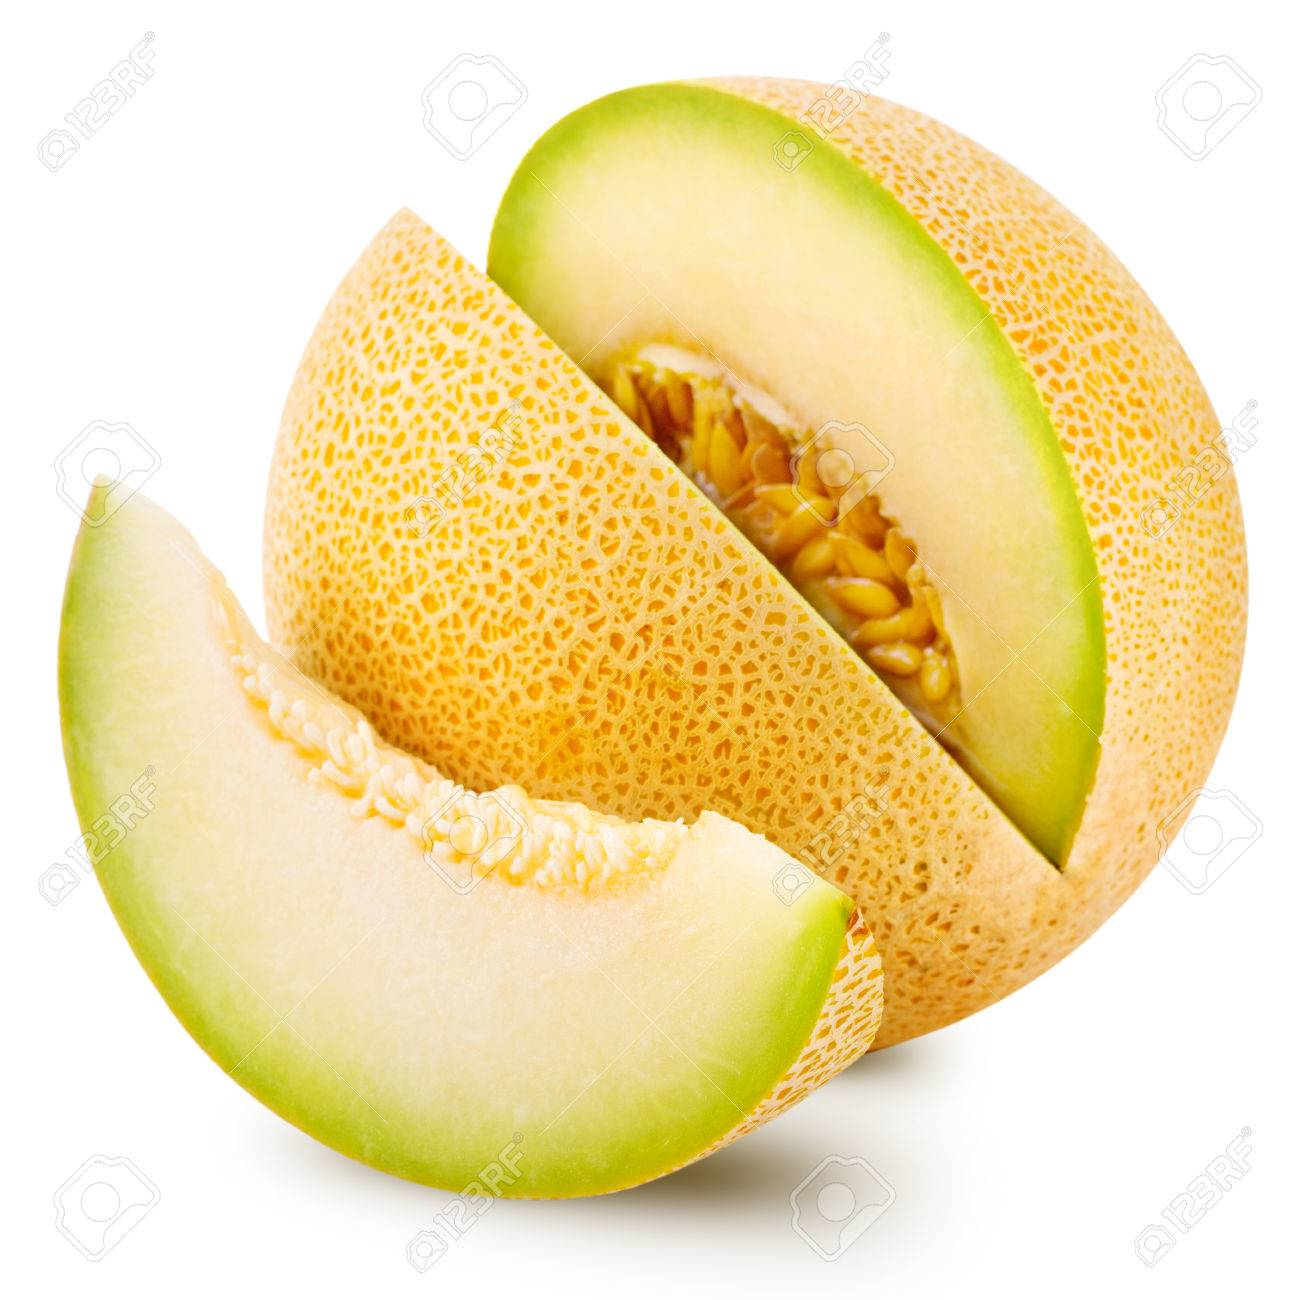 Cantaloupe Melon Isolated On White Stock Photo Picture And Royalty Free Image Image 37750434 Its horns are another slice of cantaloupe. 123rf com